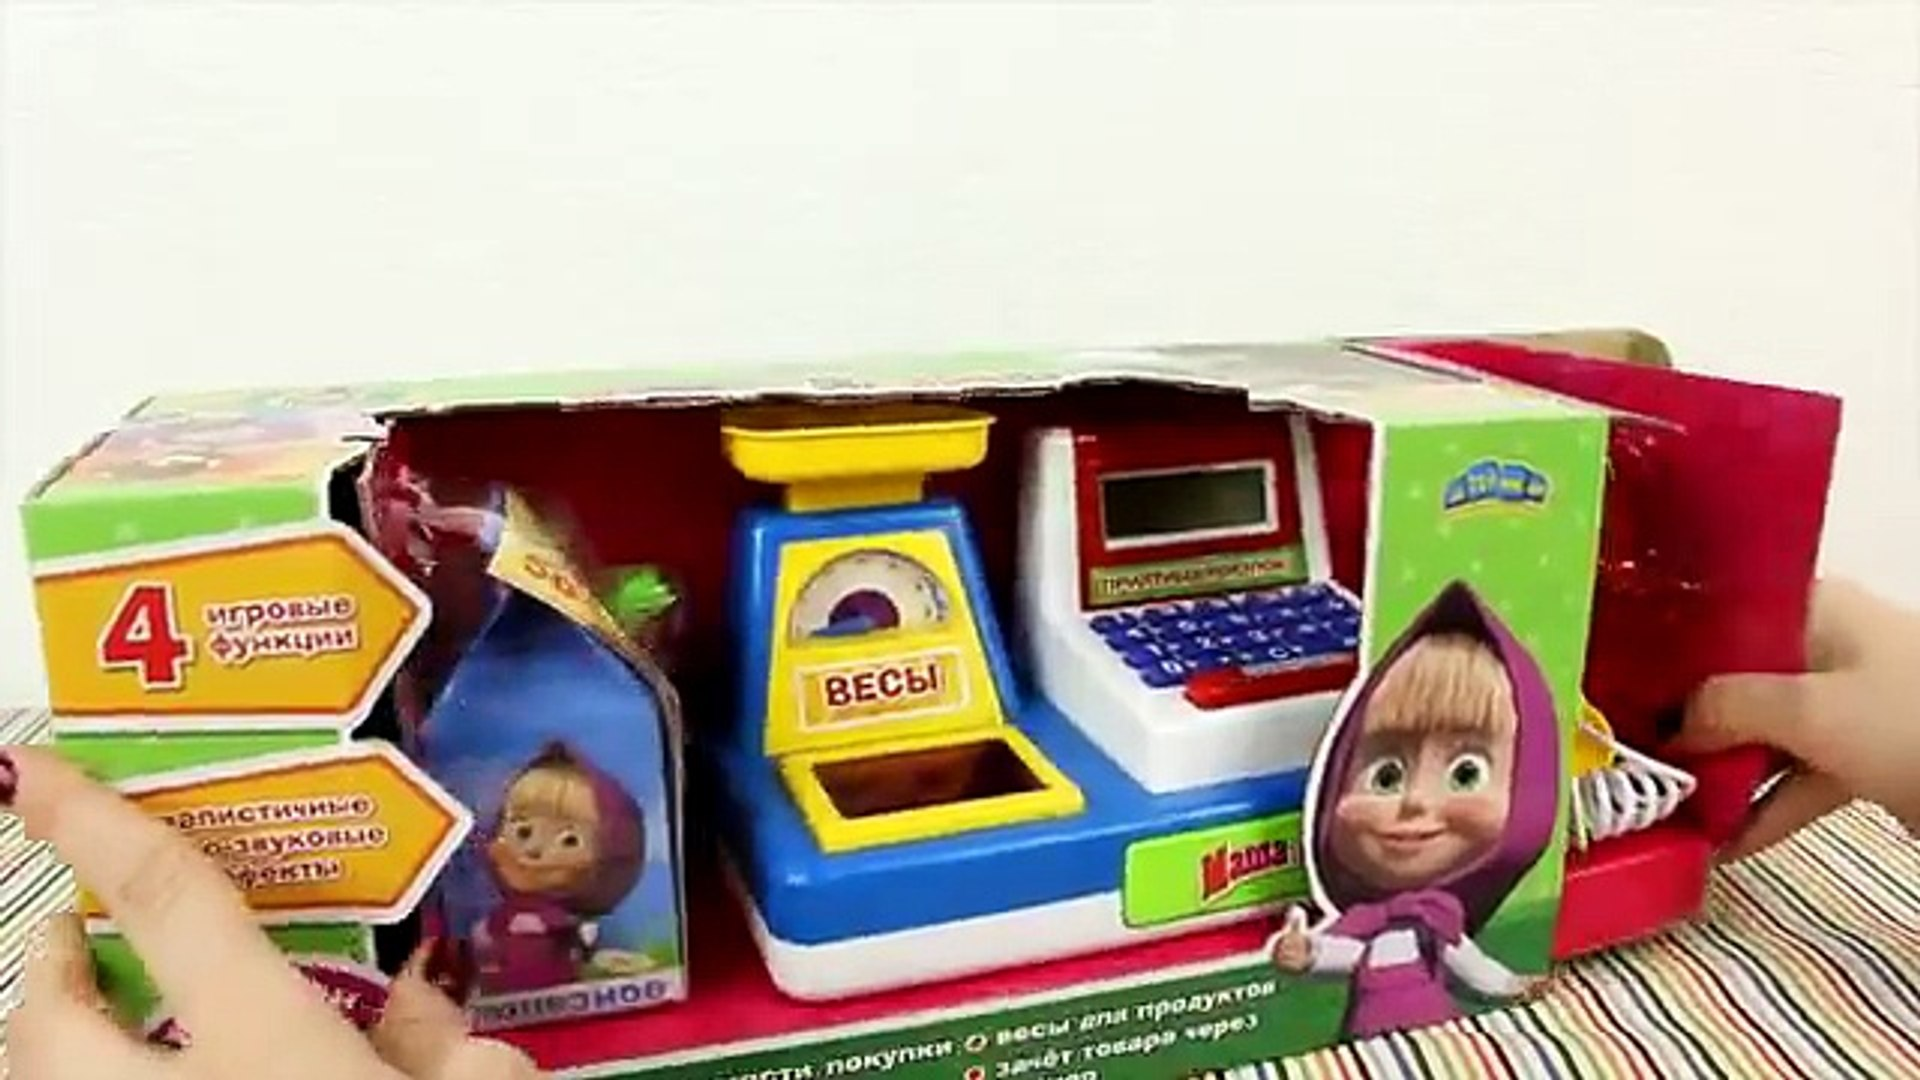 Masha and The Bear Toy Cash Machine Play-Doh Food Cooking Playsets Toy Episodes